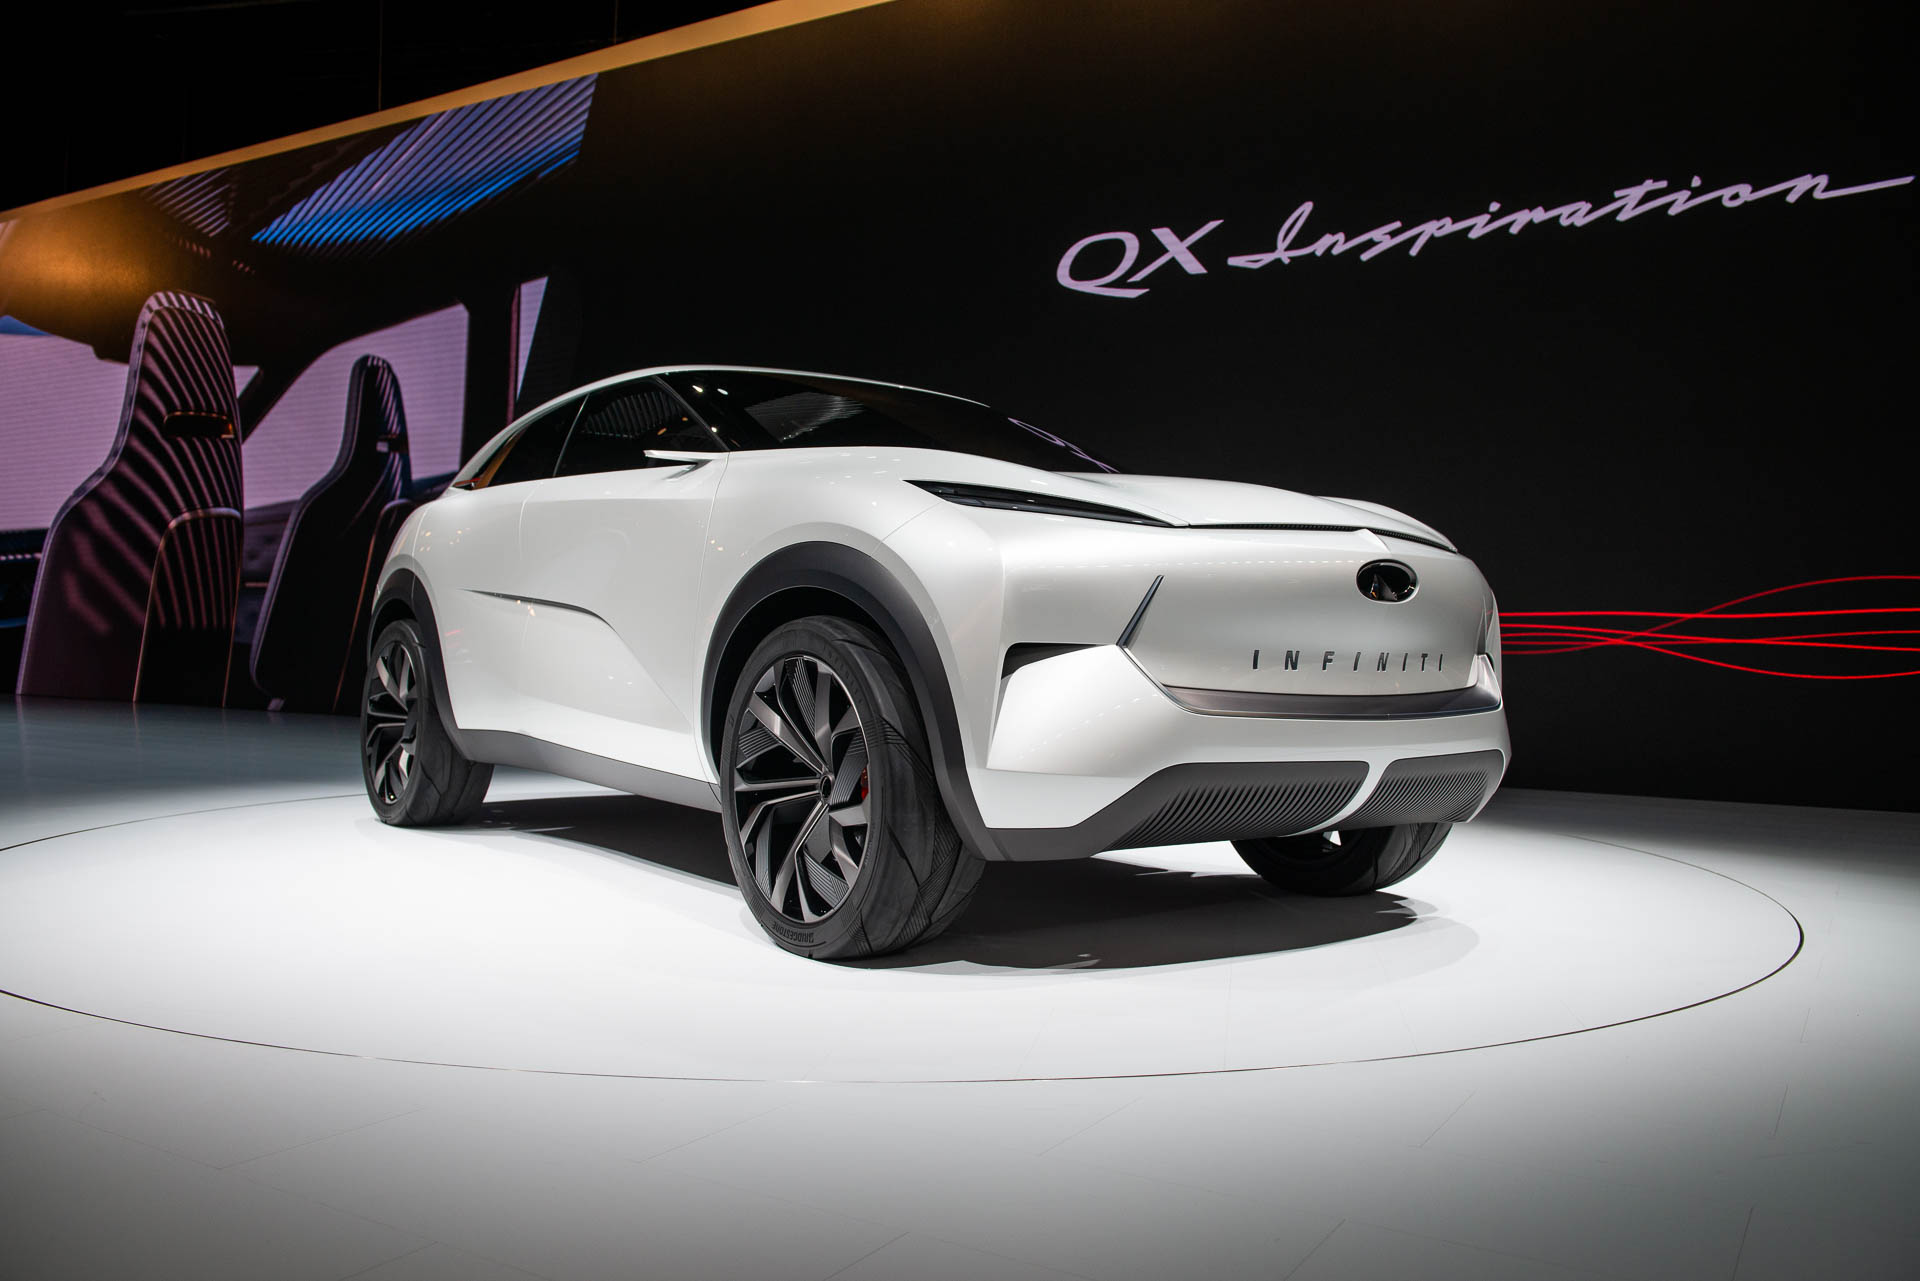 Infiniti Qx Inspiration Suv Concept Debuts In Detroit Heralds Brand S Electric Future